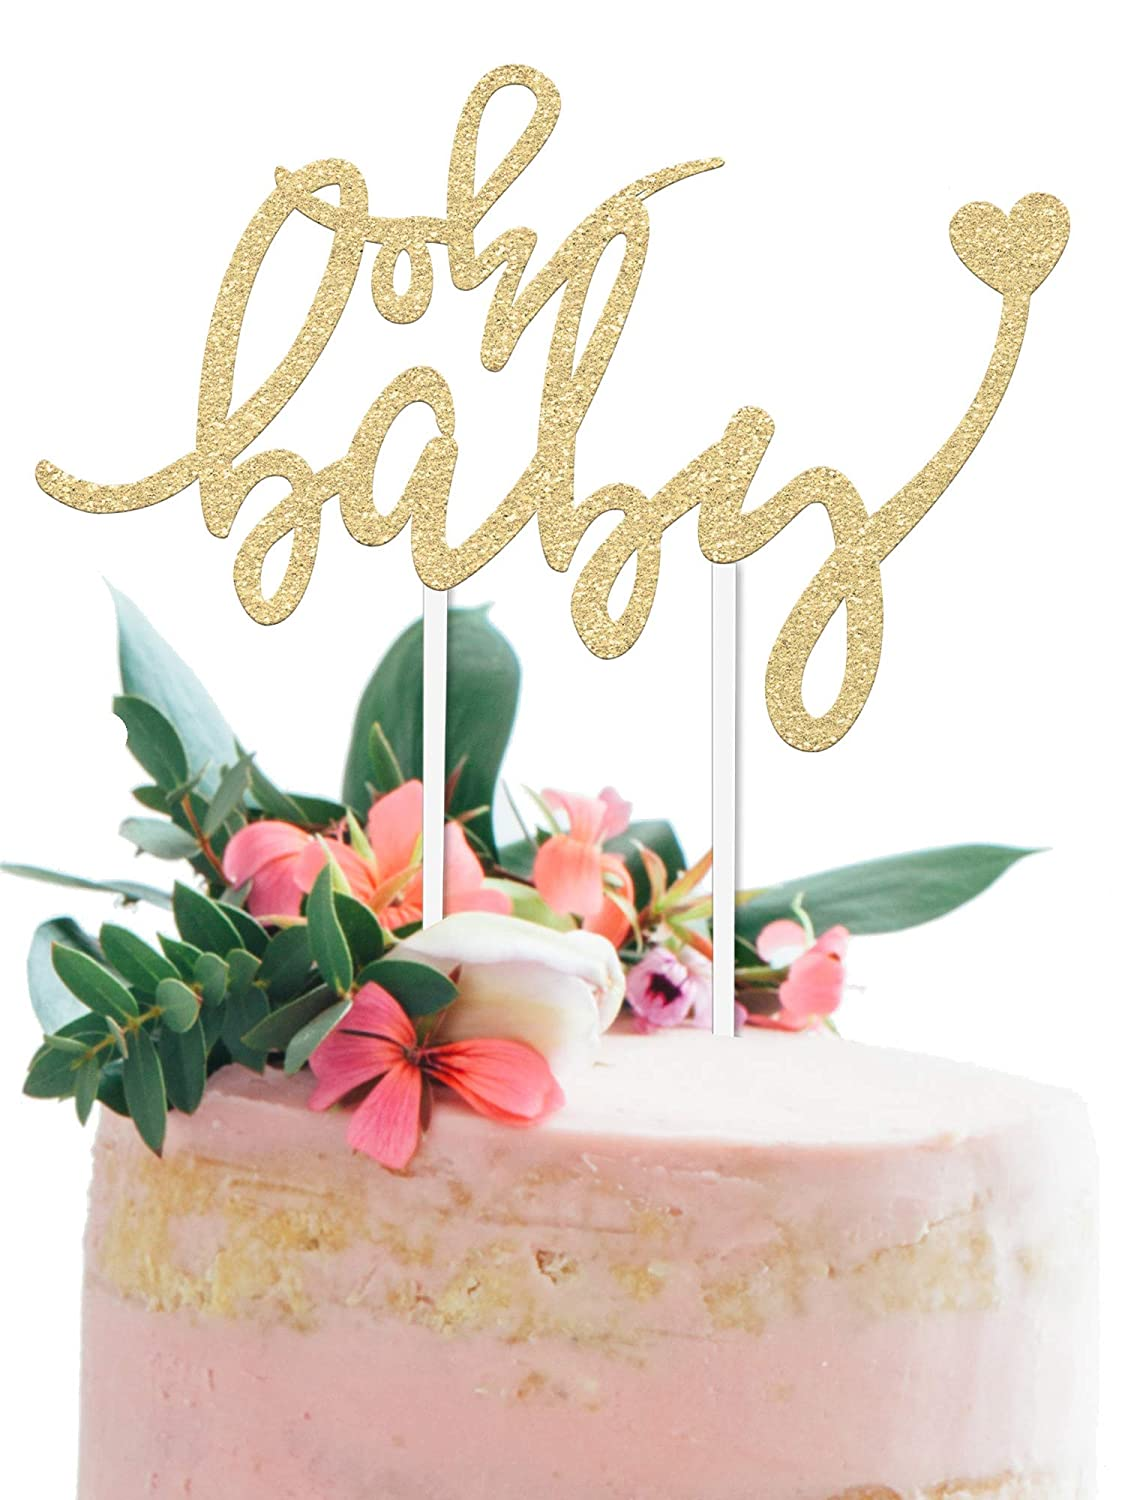 Baby Shower Cake Topper Oh Baby 6 5 X 4 Double Sided Gold Glitter Cardstock Topper For Baby Showers And Gender Reveal Parties For Boys And Girls Food Safe Eco Friendly Stand